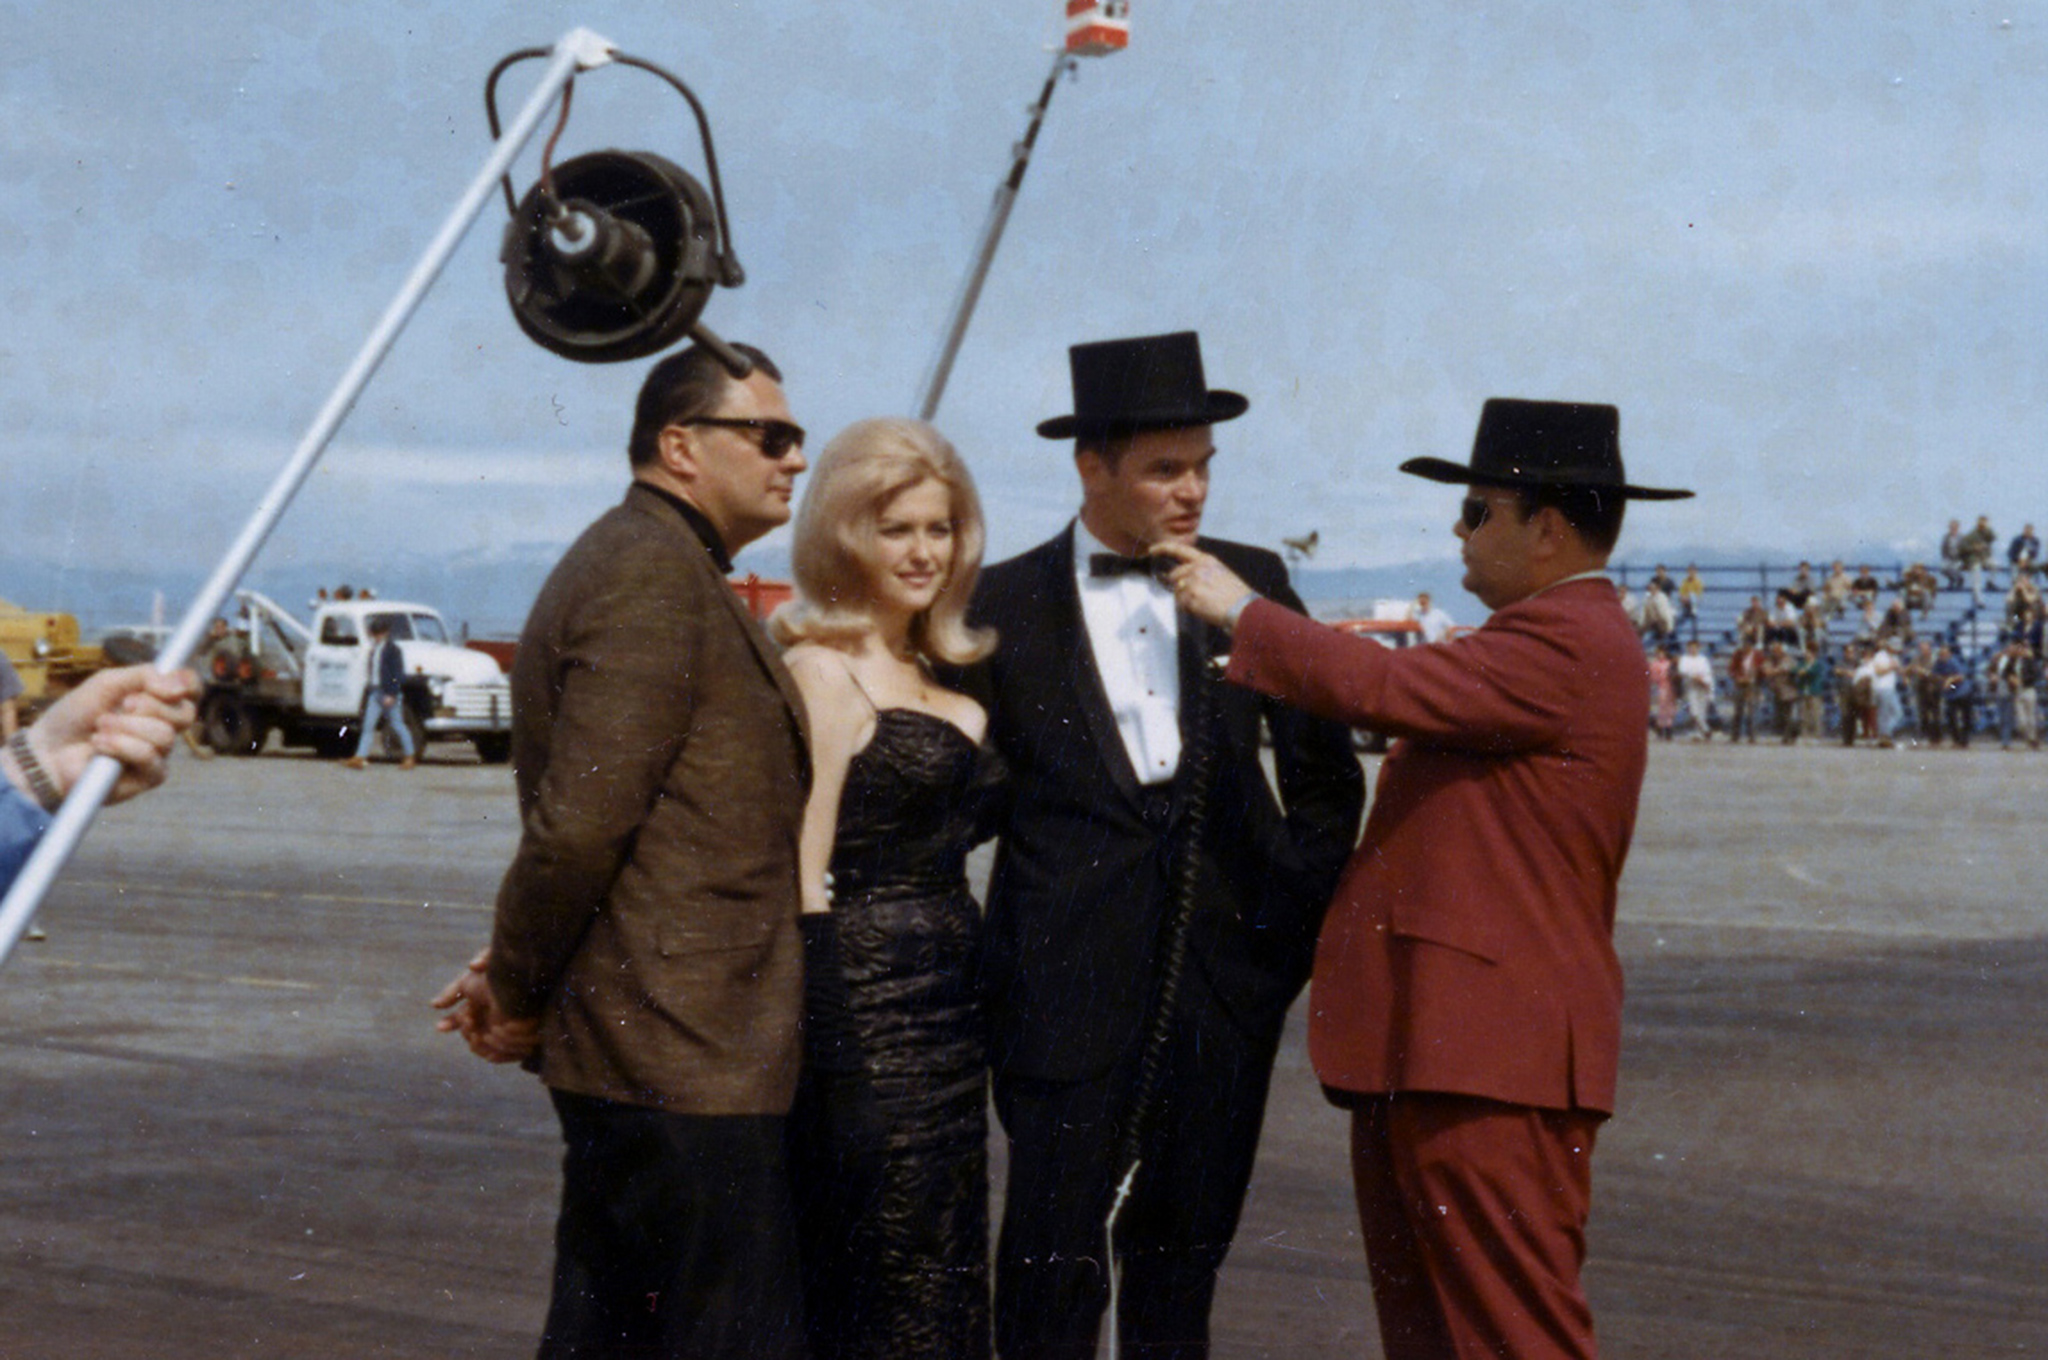 Interviewing (from left) George Hurst, Linda Vaughn, and Joe Schubeck, March Meet, 1966.